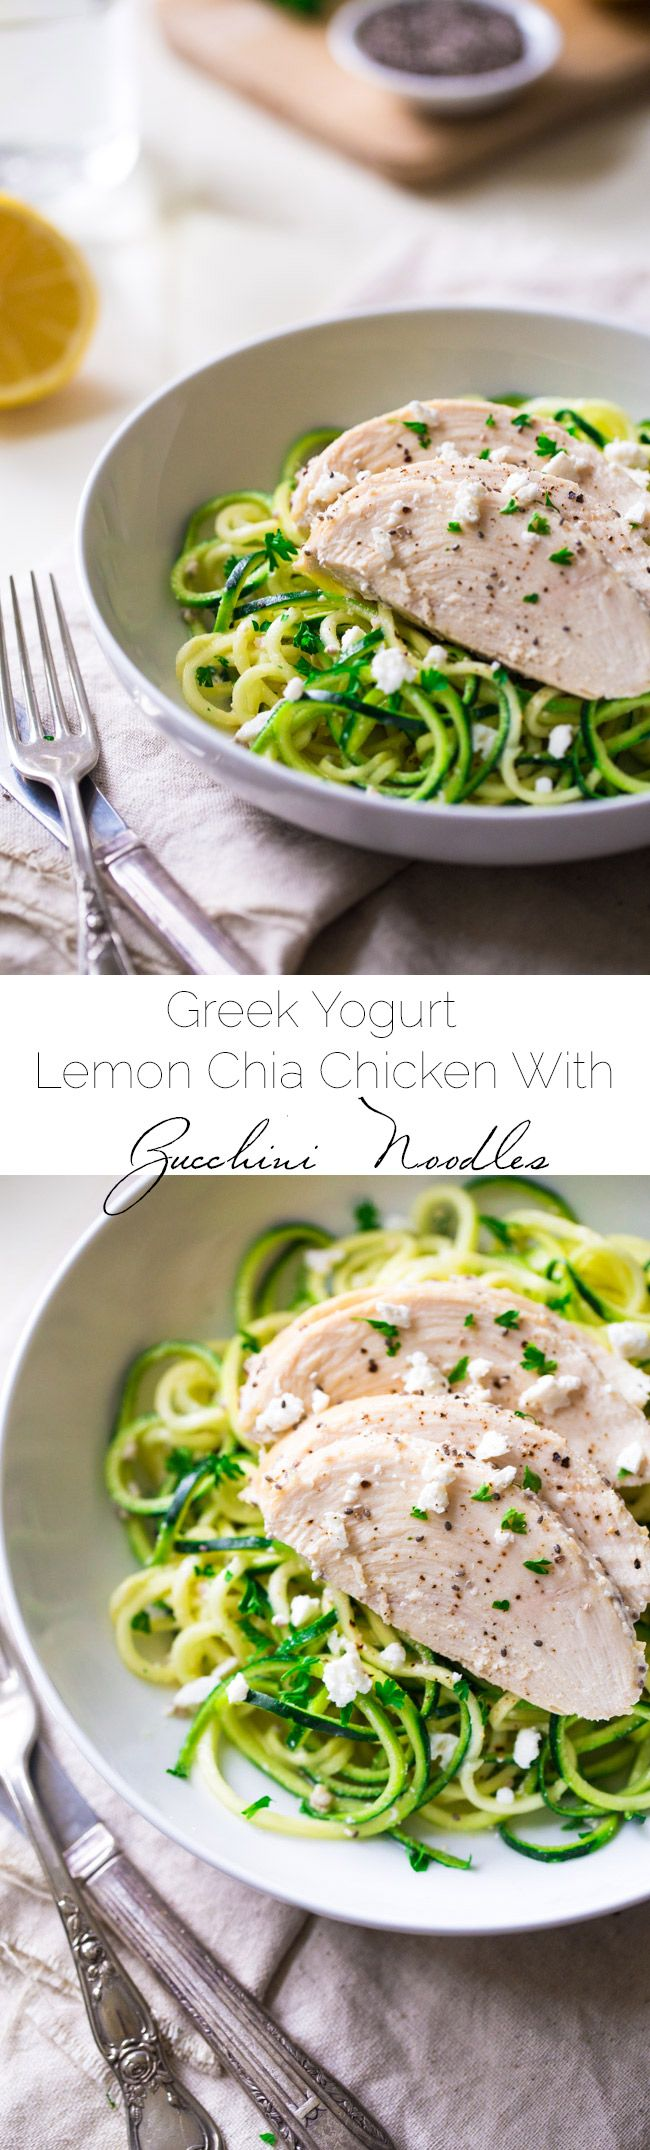 Lemon Chia Greek Yogurt Chicken and Zucchini Noodles - A super easy, low carb and healthy weeknight meal that is perfect for Spring time! | Foodfaithfitness.com | @FoodFaithFit